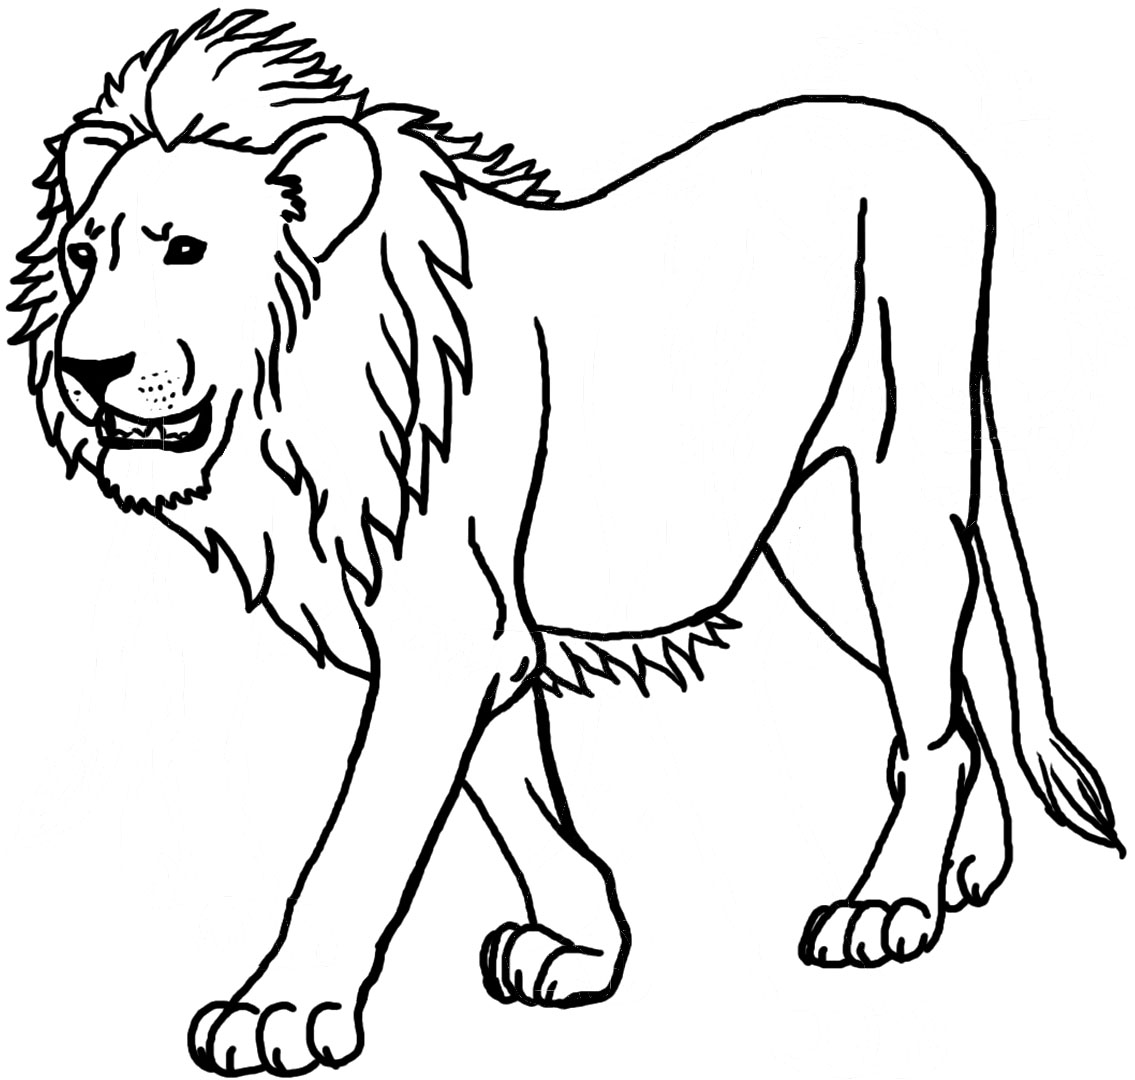 1135x1080 Printable Pictures Lion Coloring Pages 16 On For Kids